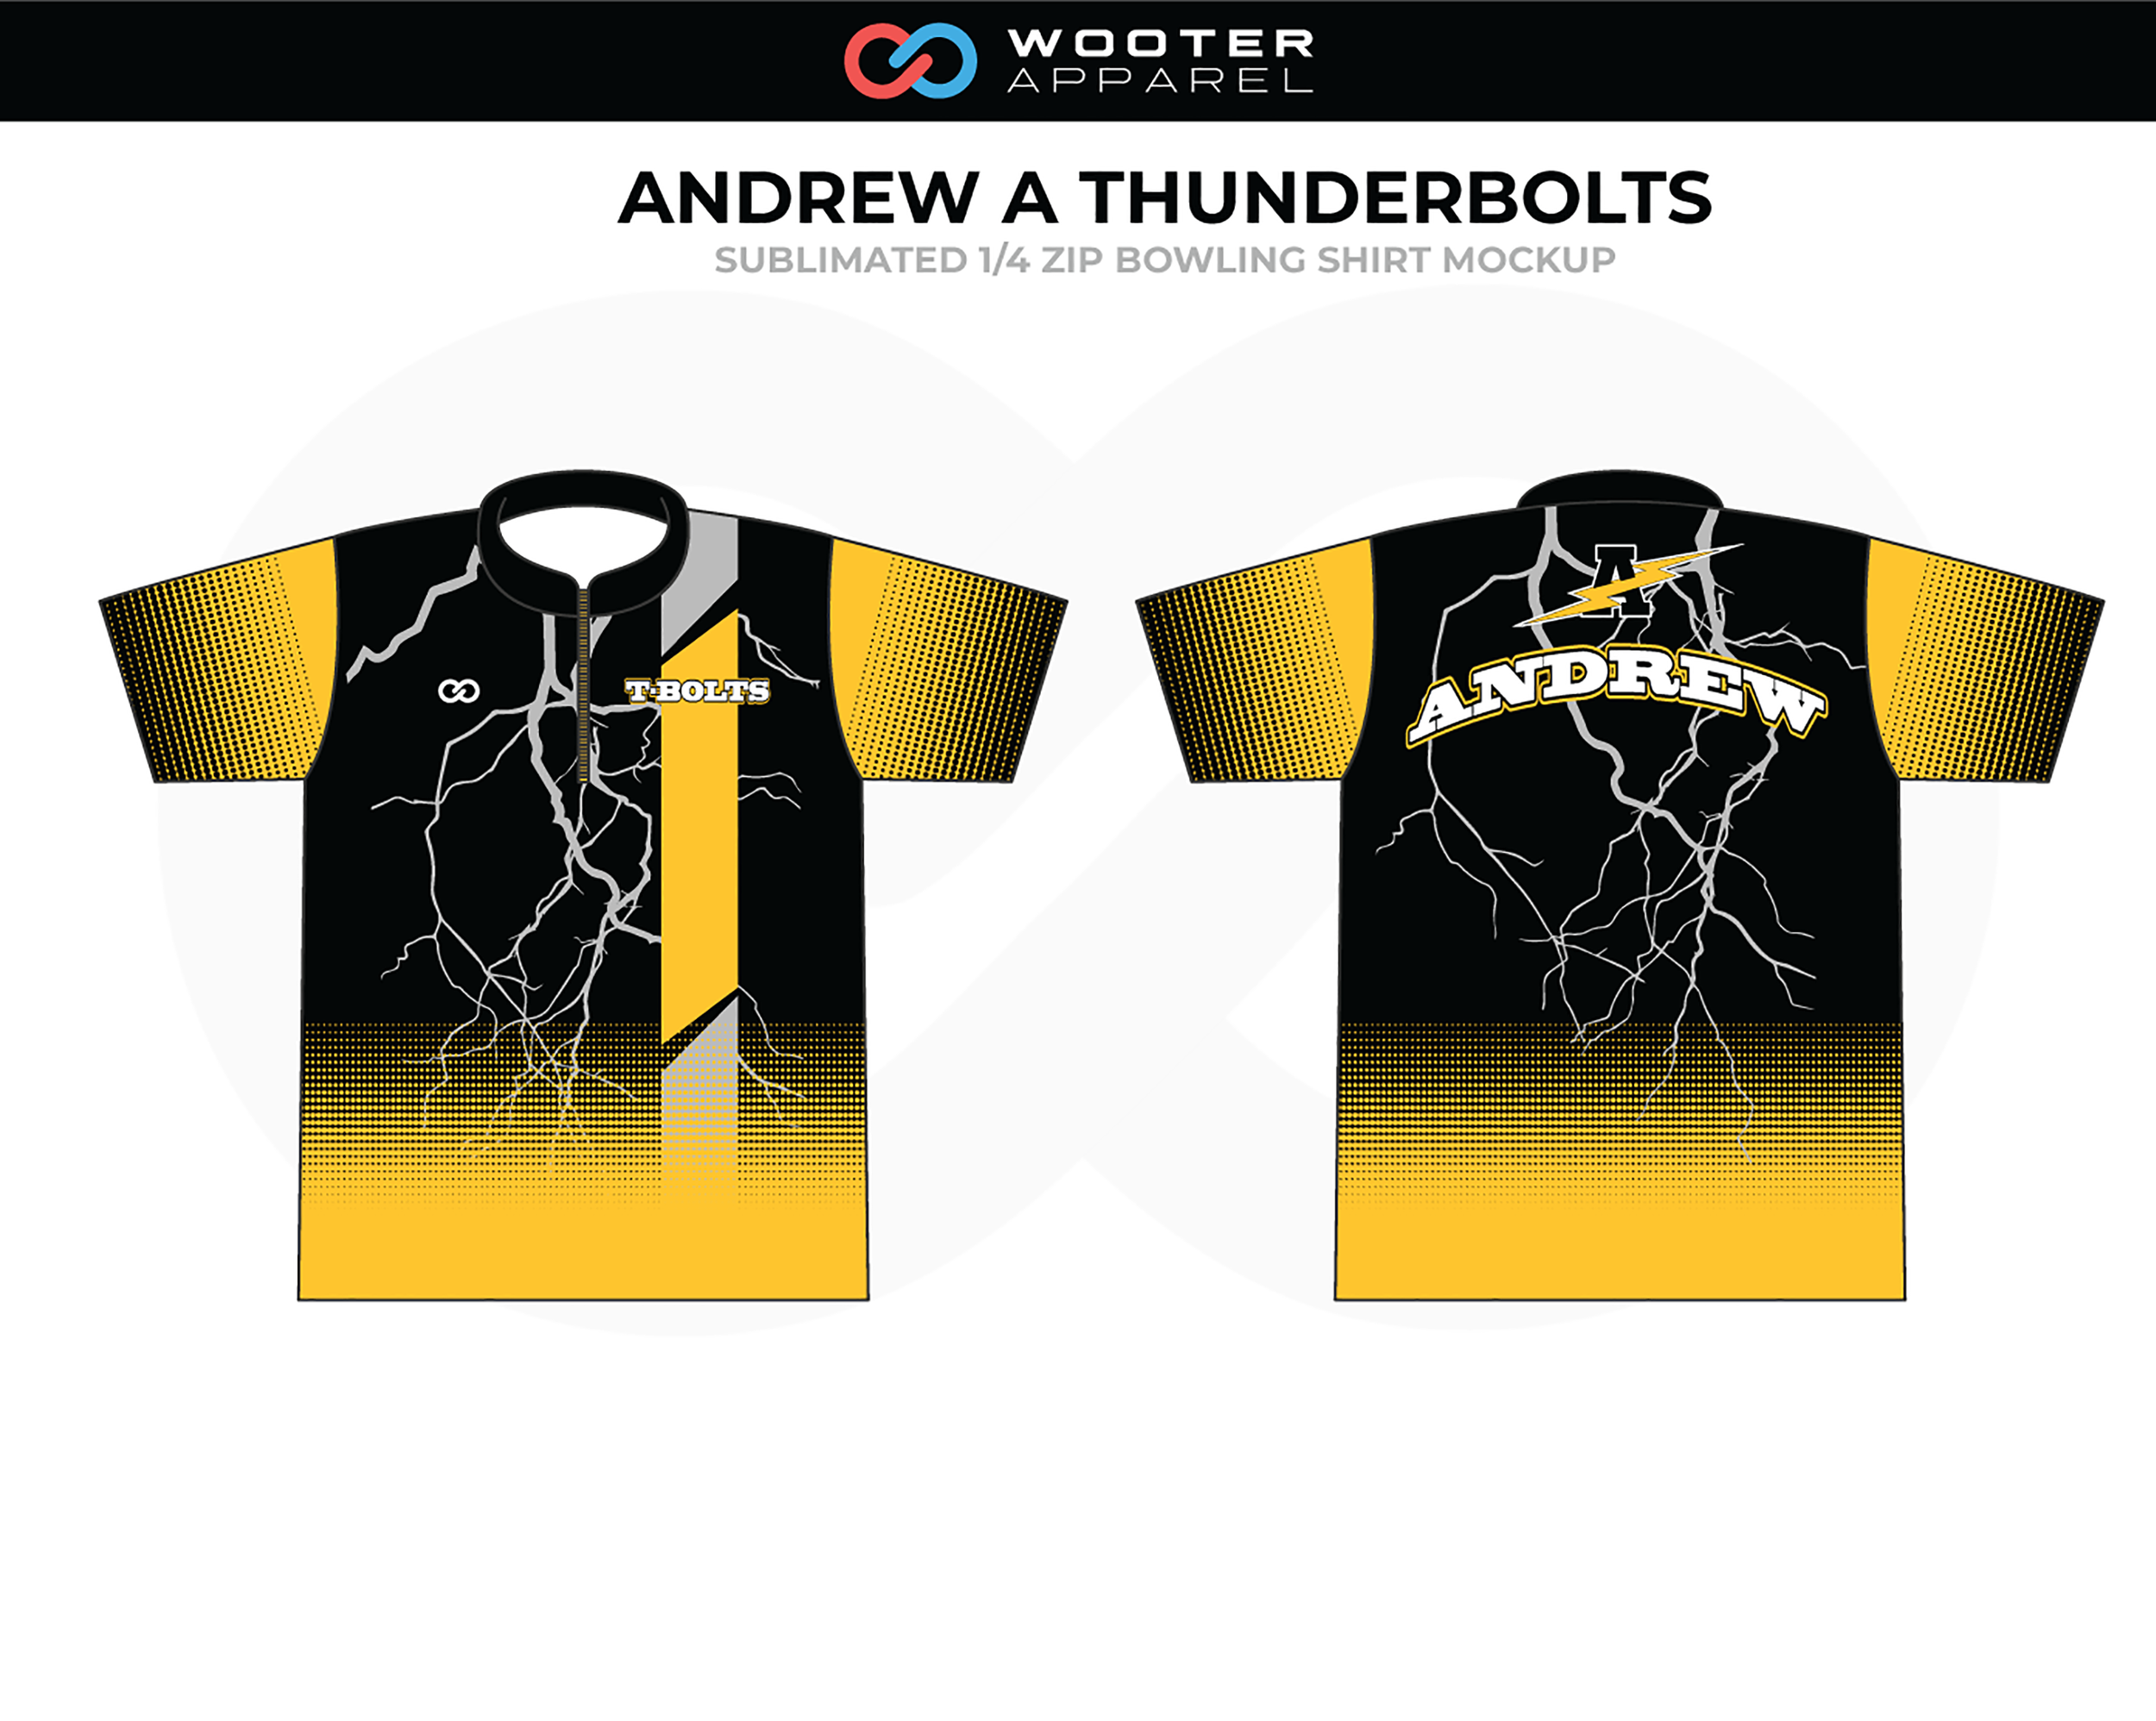 ANDREW A THUNDERBOLTS Black Yellow White 1/4 Zip Bowling Shirt